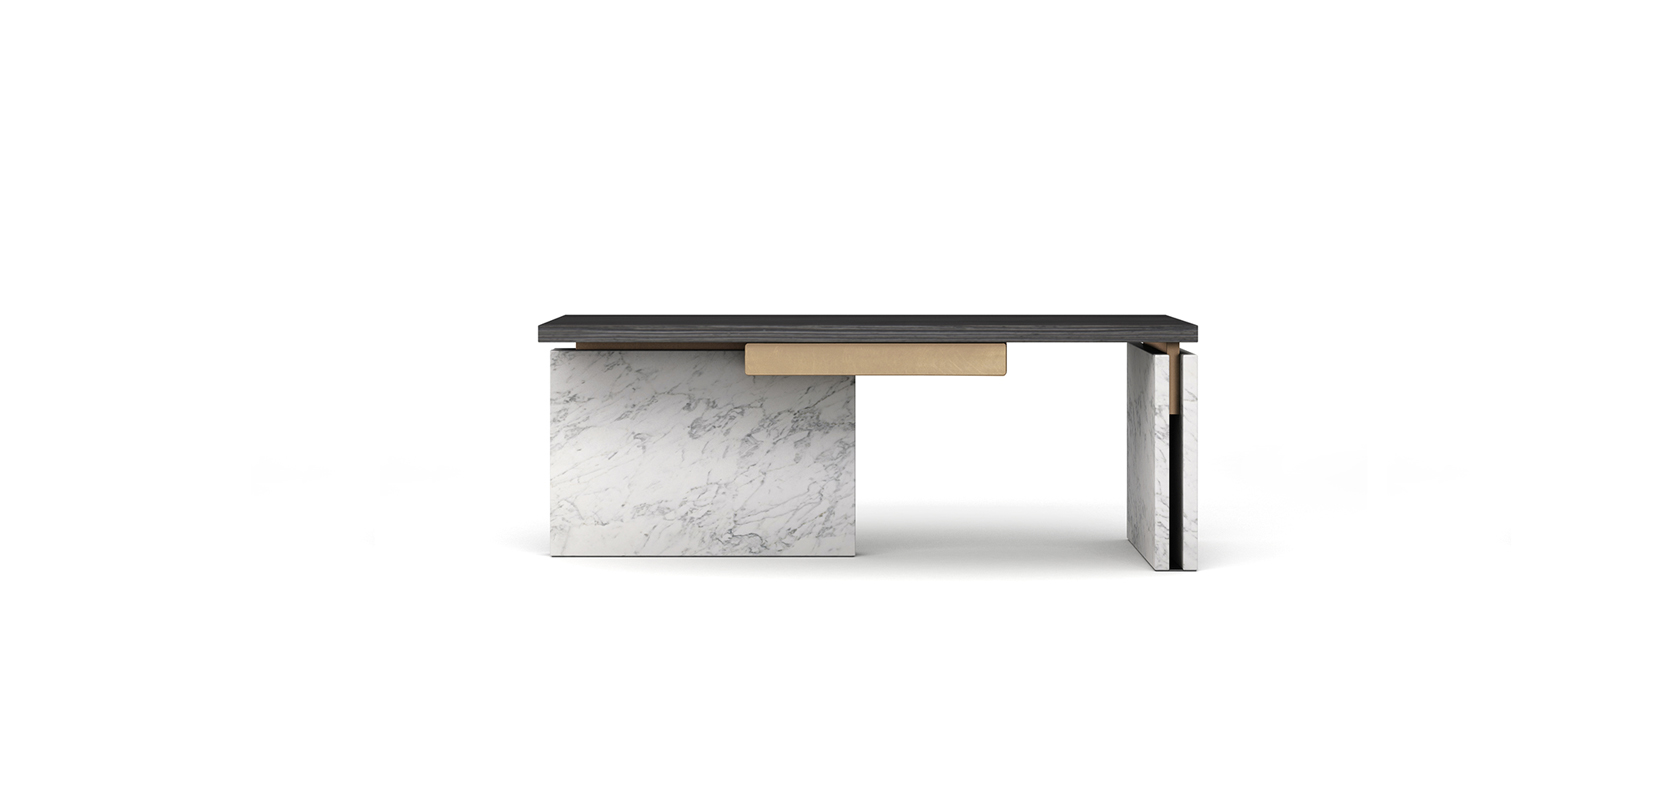 RONG DESK BRAND:  ZIZAOSHE  WEB:   www.zizaoshe.com  RONG Desk is made of three different kinds of materials. Wood with dark texture, natural stone, combined with partial decoration of metal, shows steady stance while interpreting refined gentlemanly qualities.